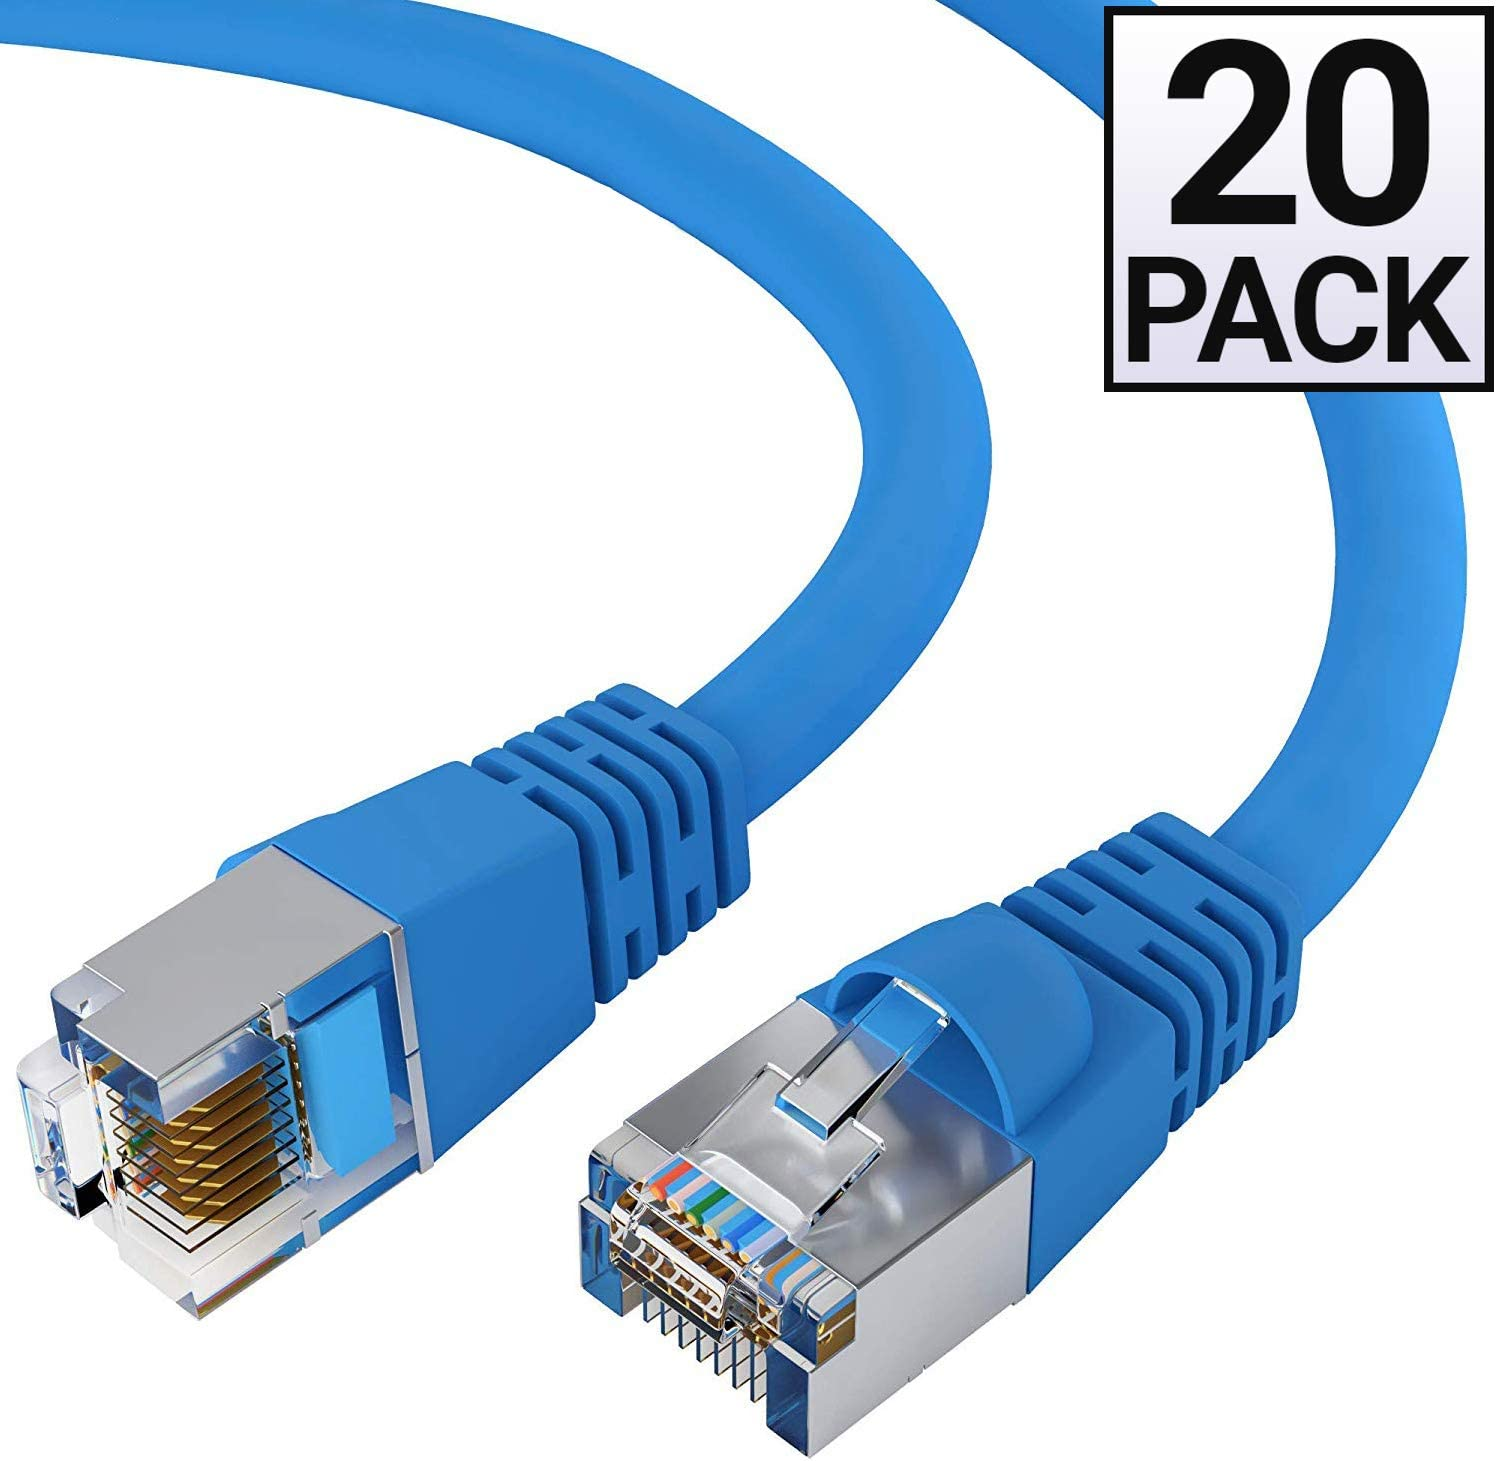 14 Feet - Gray FTP Cat5e Shielded Ethernet Cable Computer Network Cable with Snagless Connector RJ45 10Gbps High Speed LAN Internet Cord Available in 28 Lengths and 10 Colors GOWOS 5-Pack